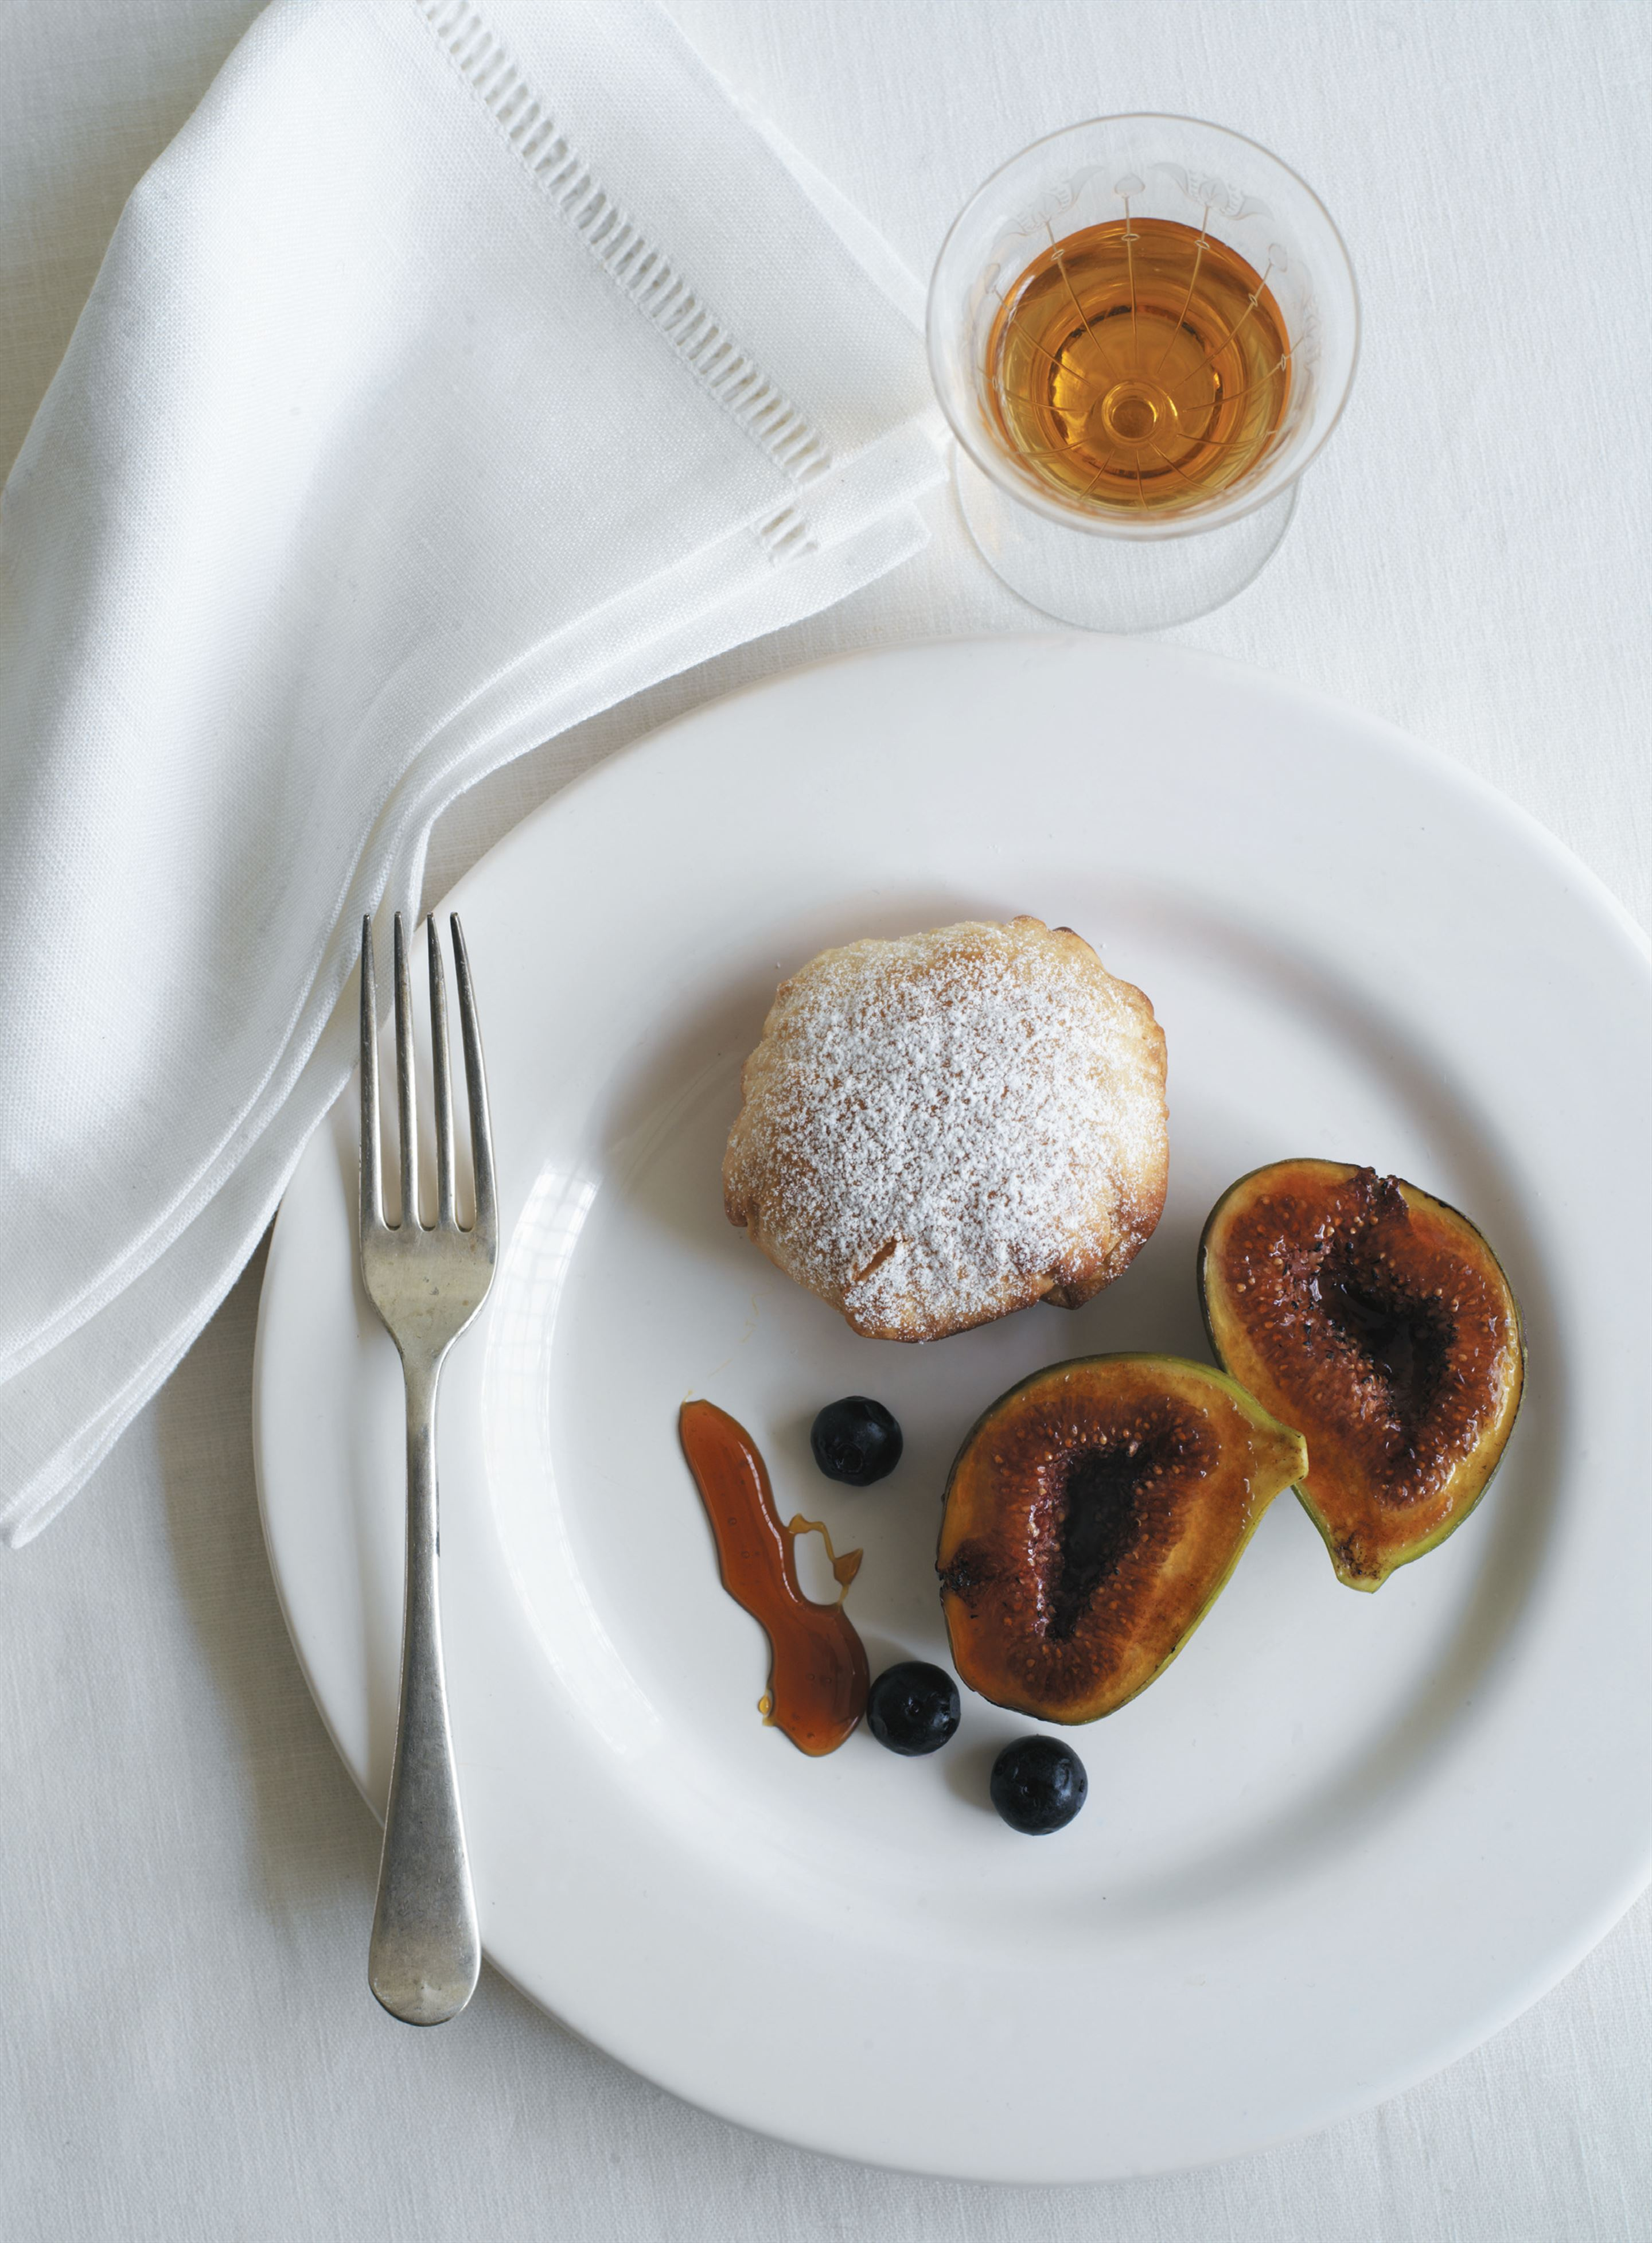 Honey-curd pies with rose-scented figs